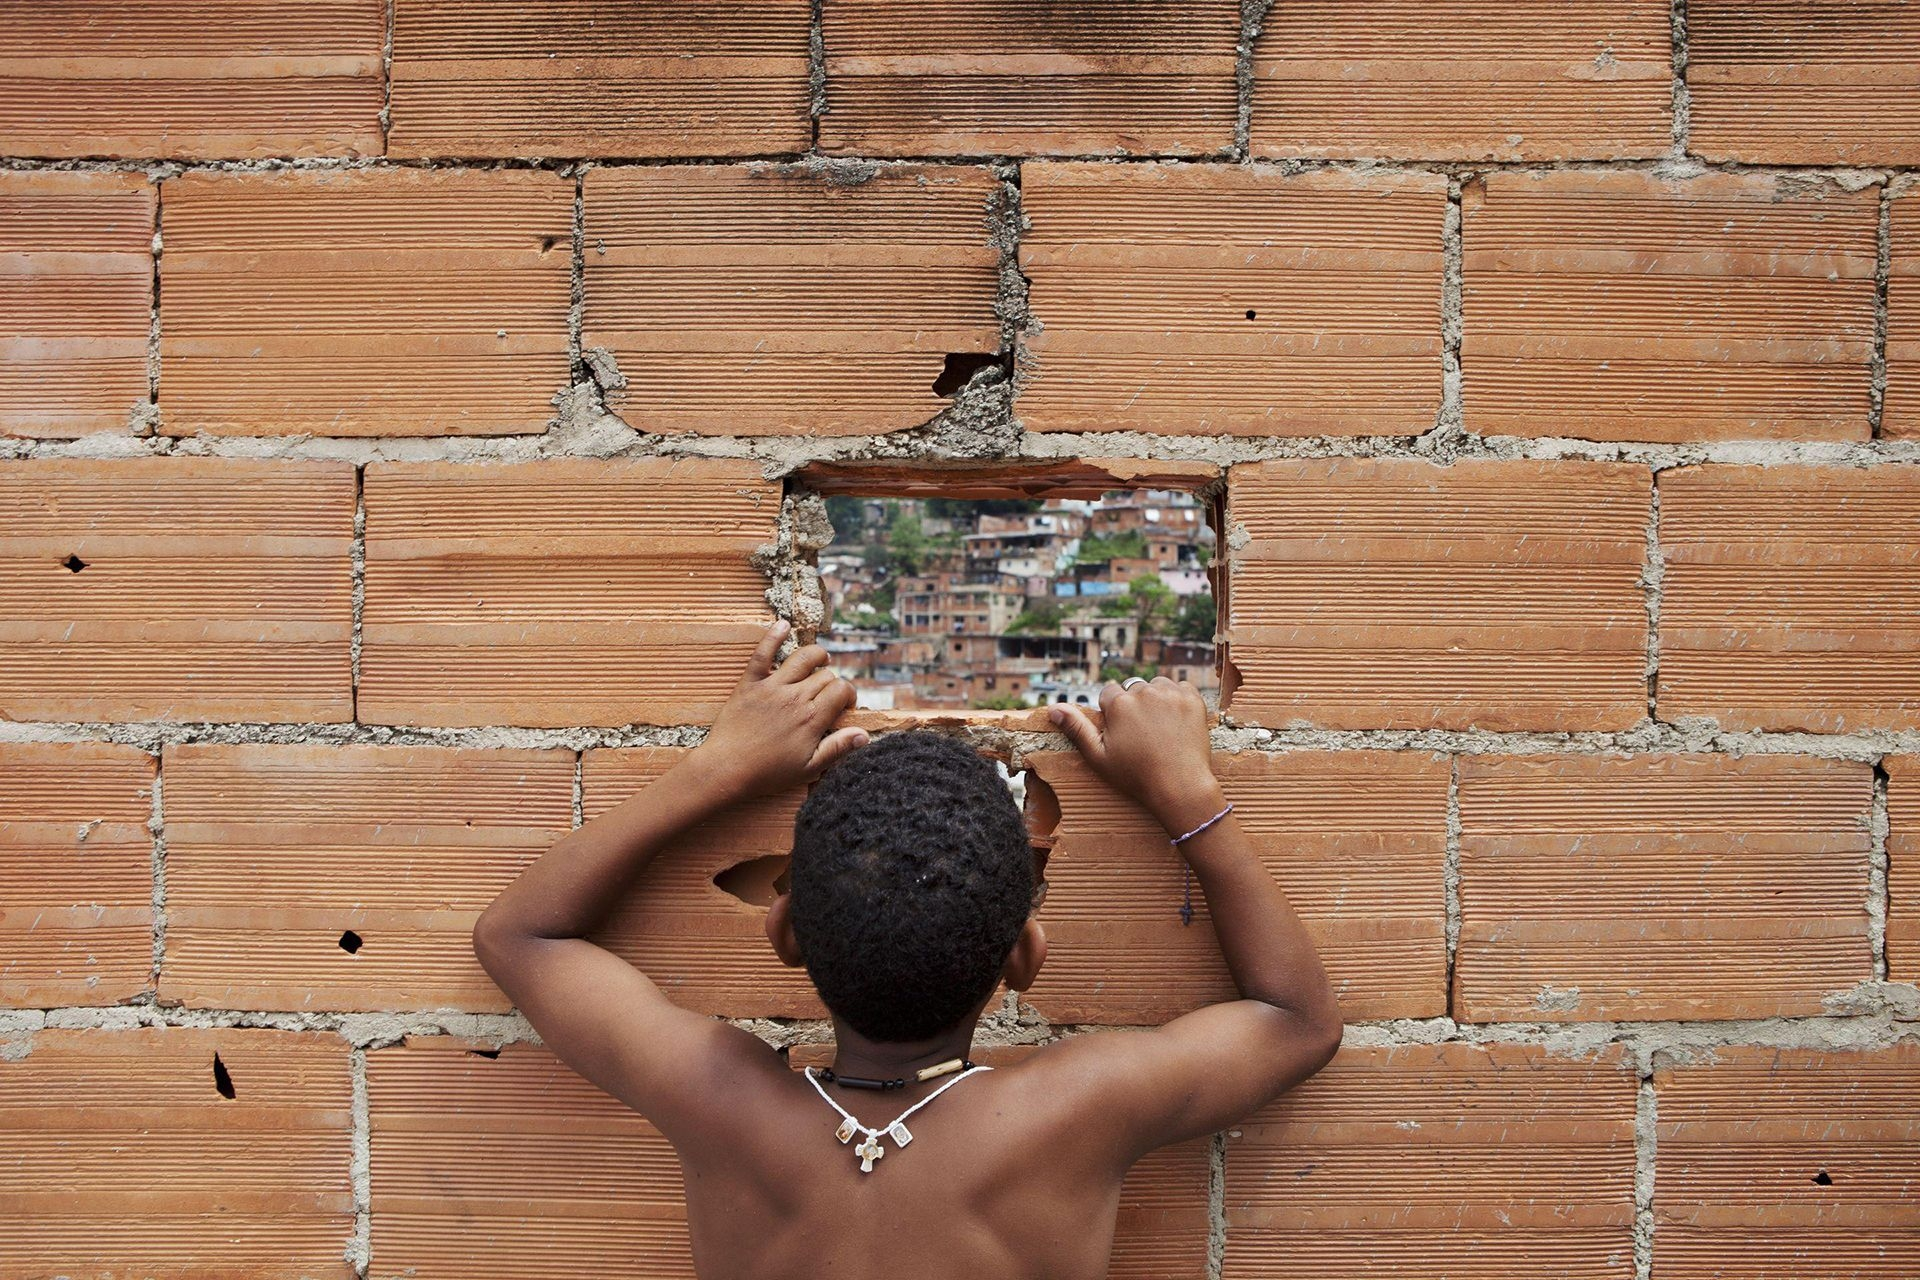 Photograph by constanza y isabella plaza, National Geographic Your Shot